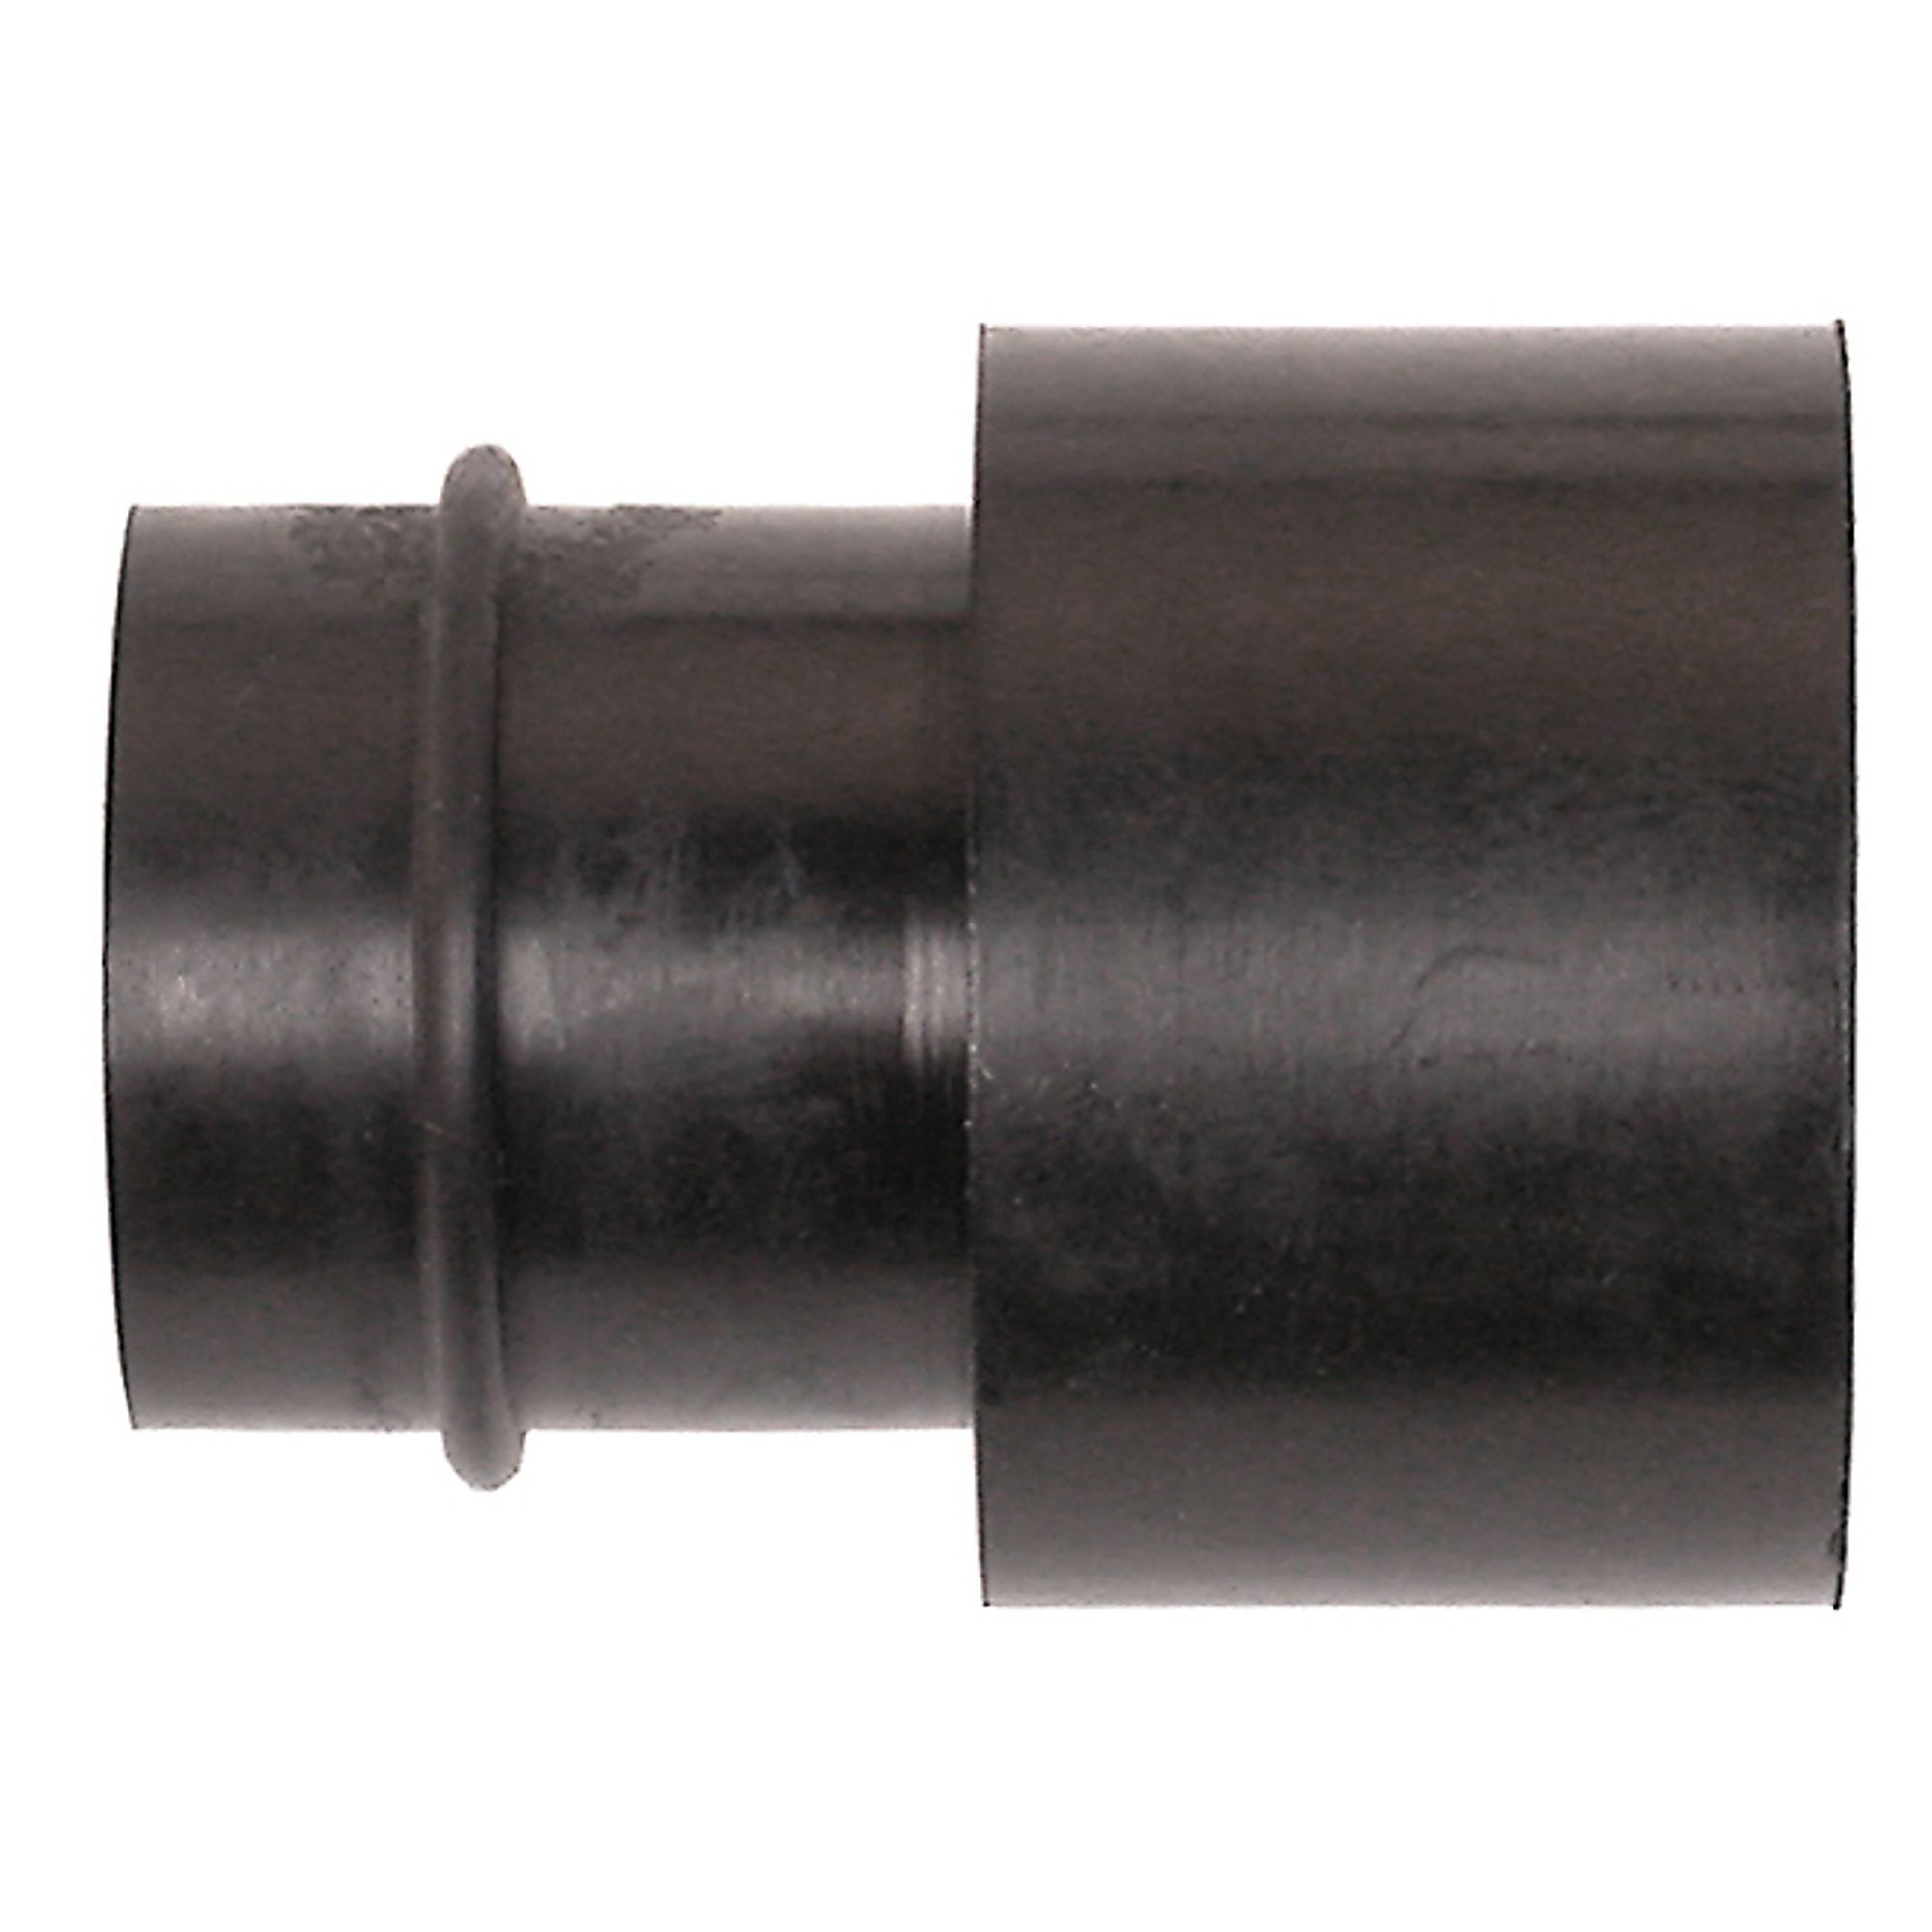 NRS Leafield / Military Valve Adapter